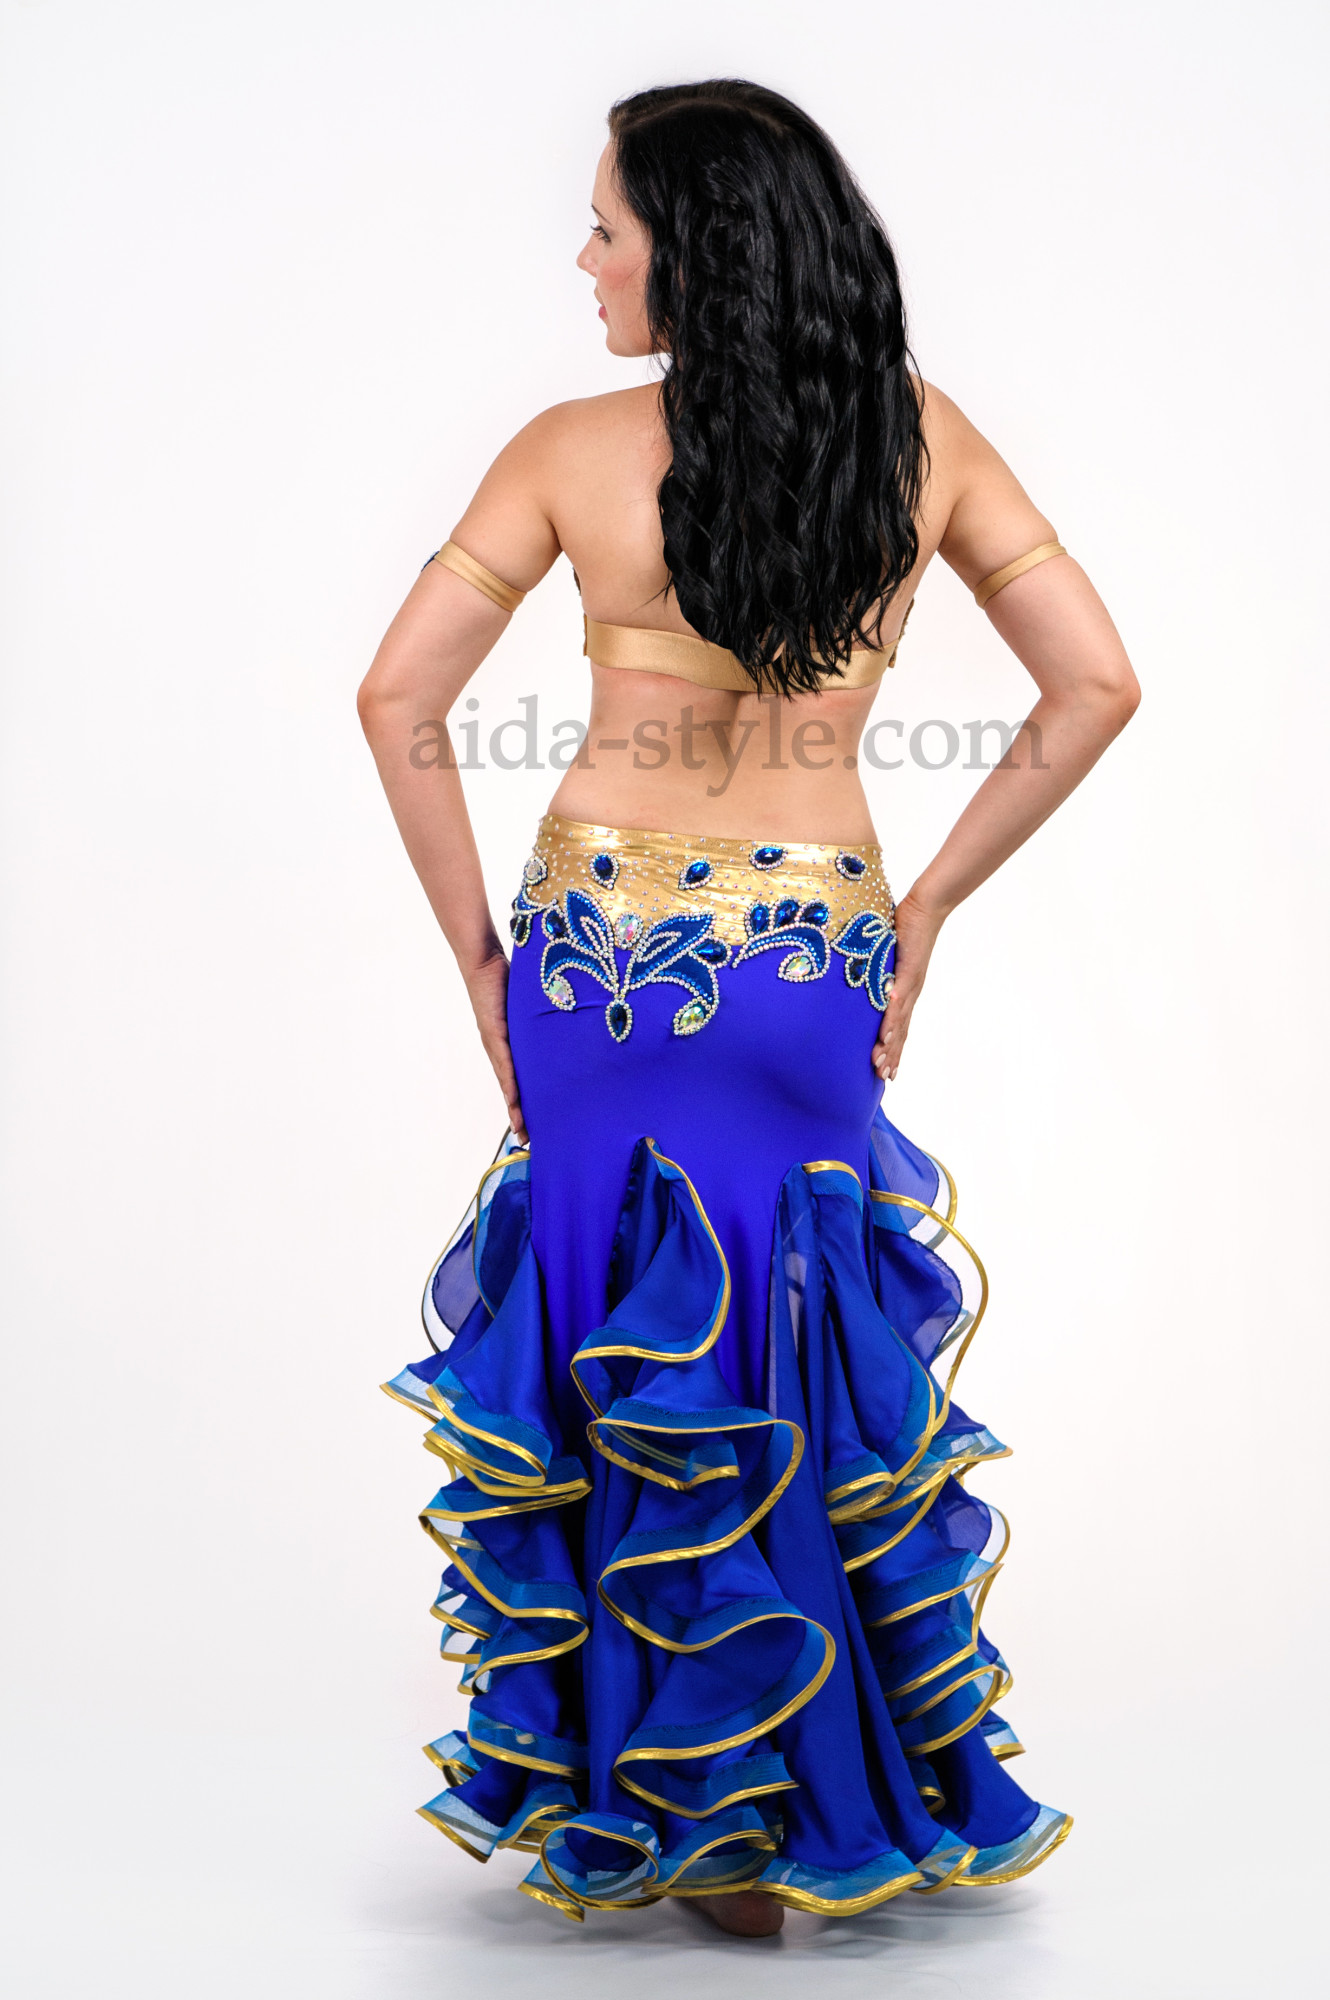 Blue professional belly dance costume with a cut on the right side and golden belt